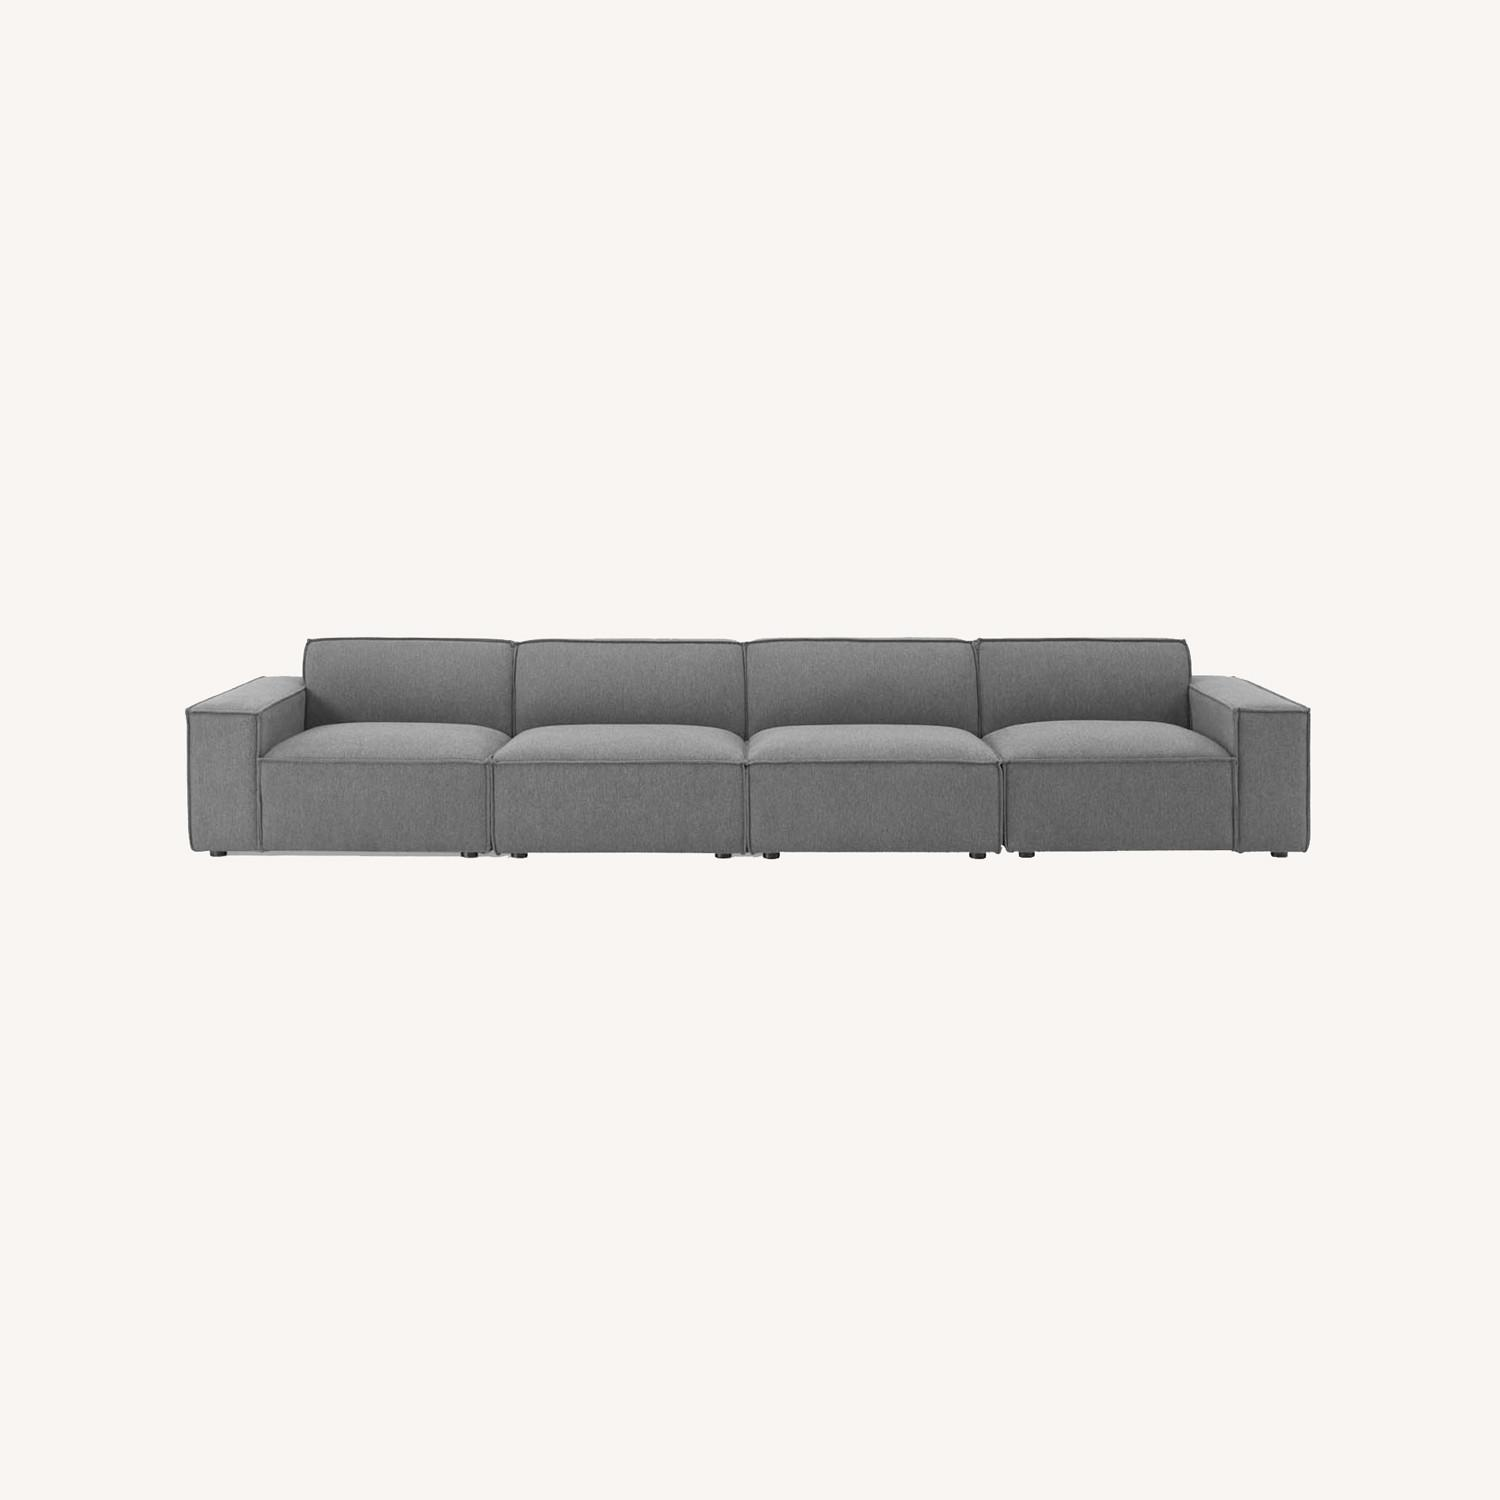 4-Piece Sectional Sofa In Charcoal Foam Padding - image-11